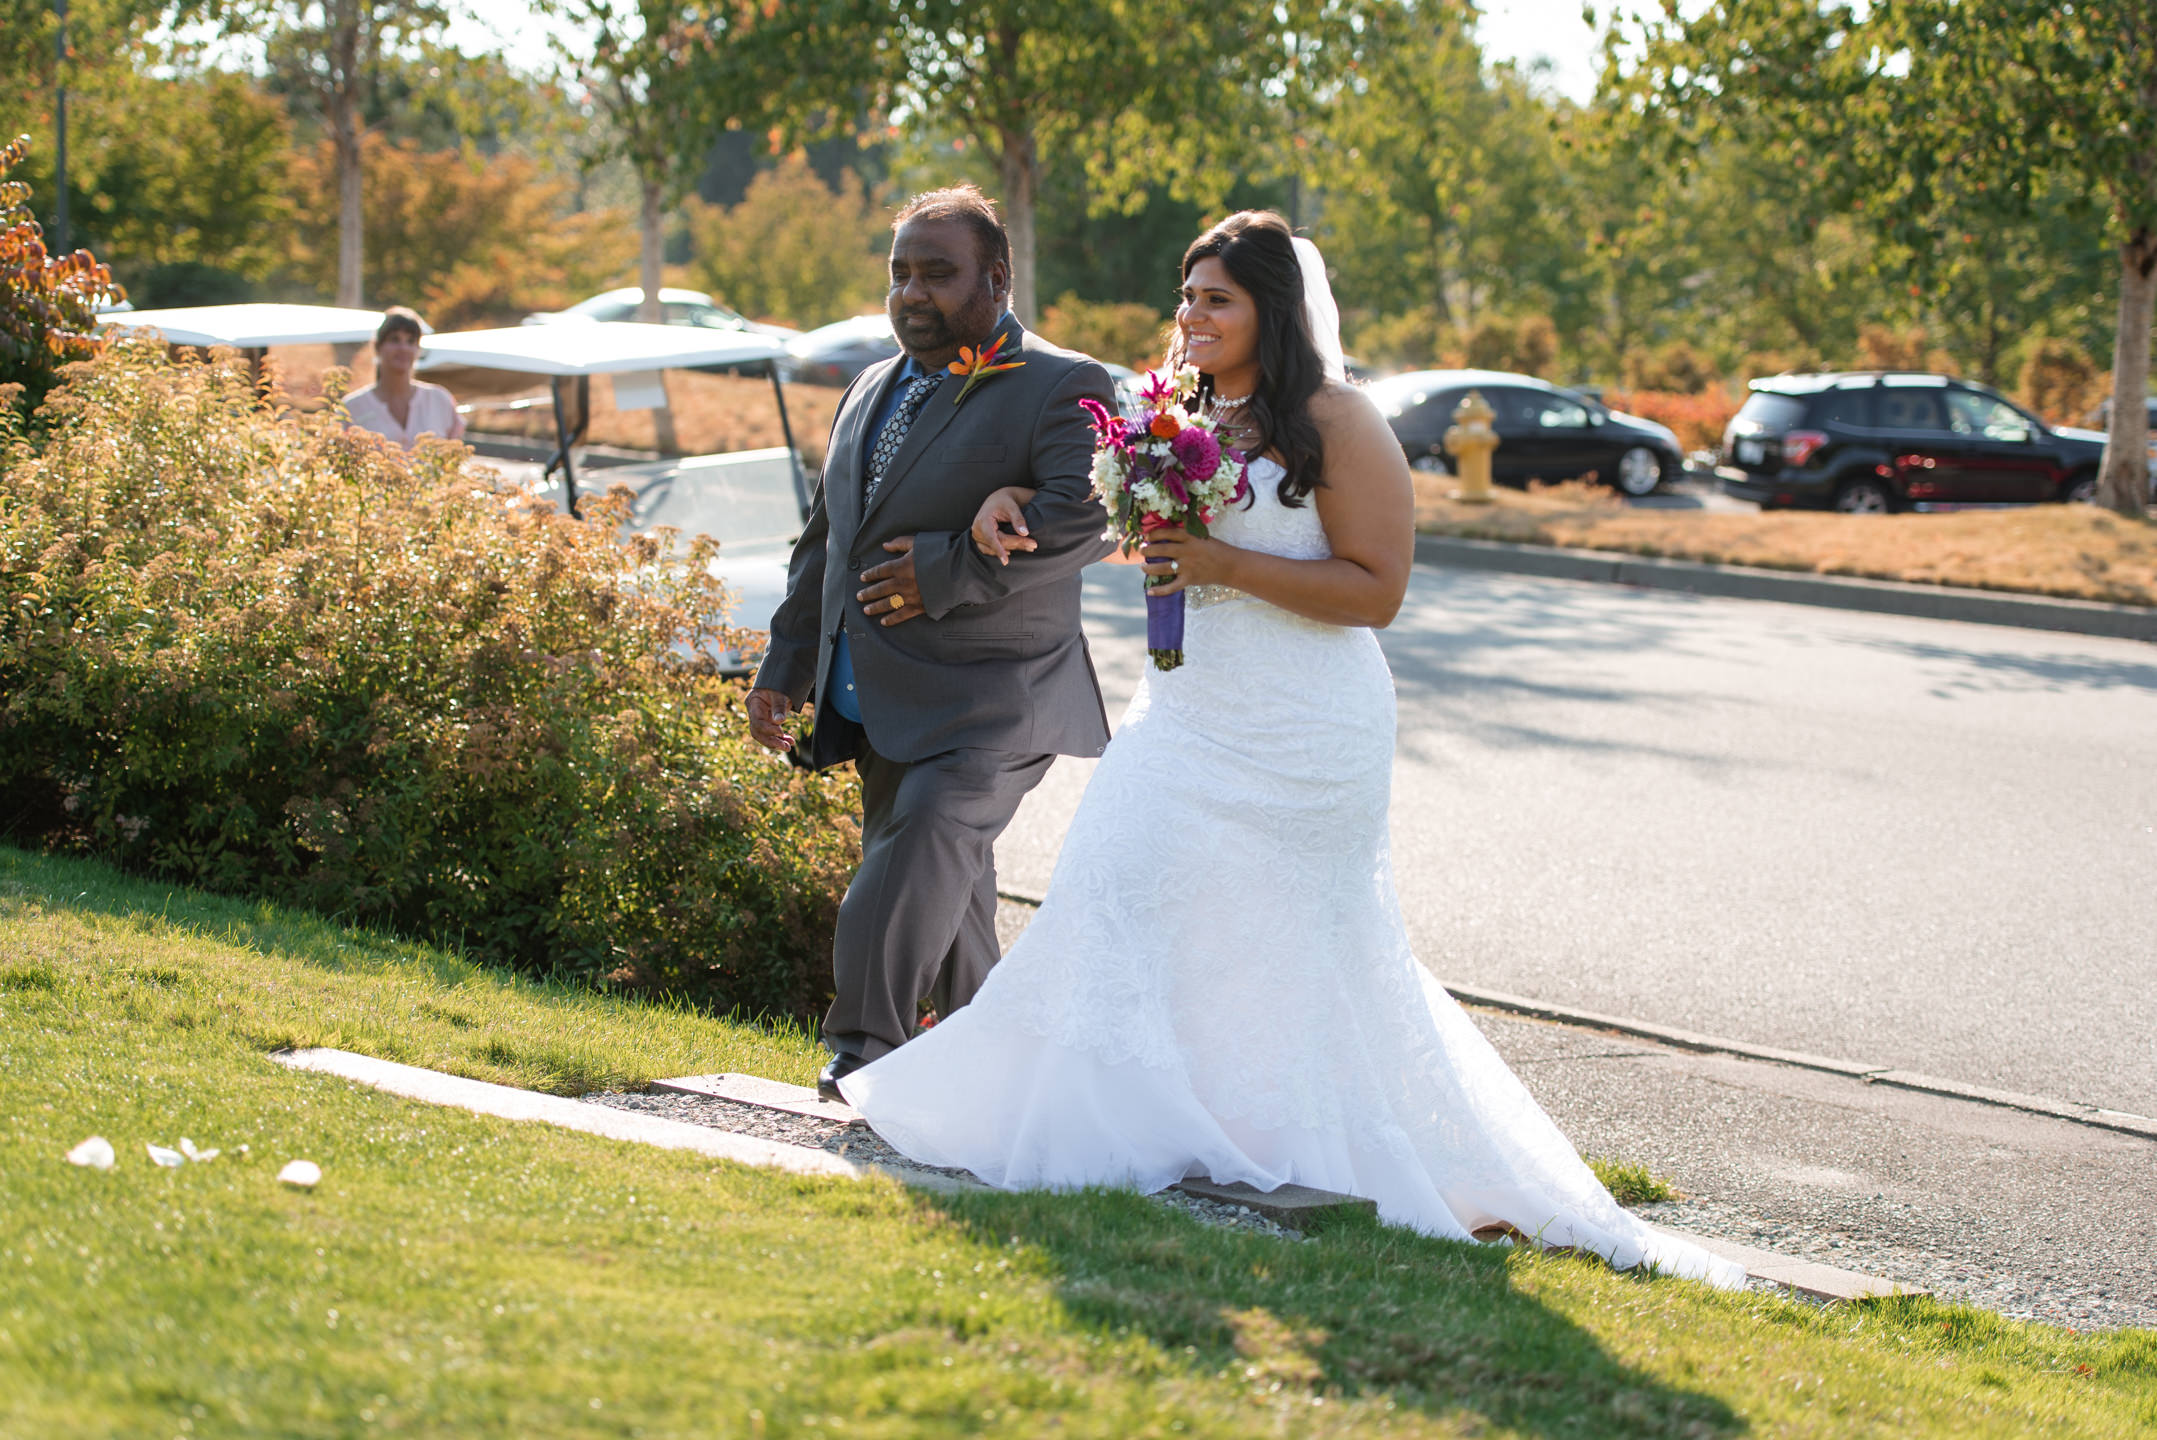 Indian Bride and Uncle Walk Down Aisle at Wedding Ceremony